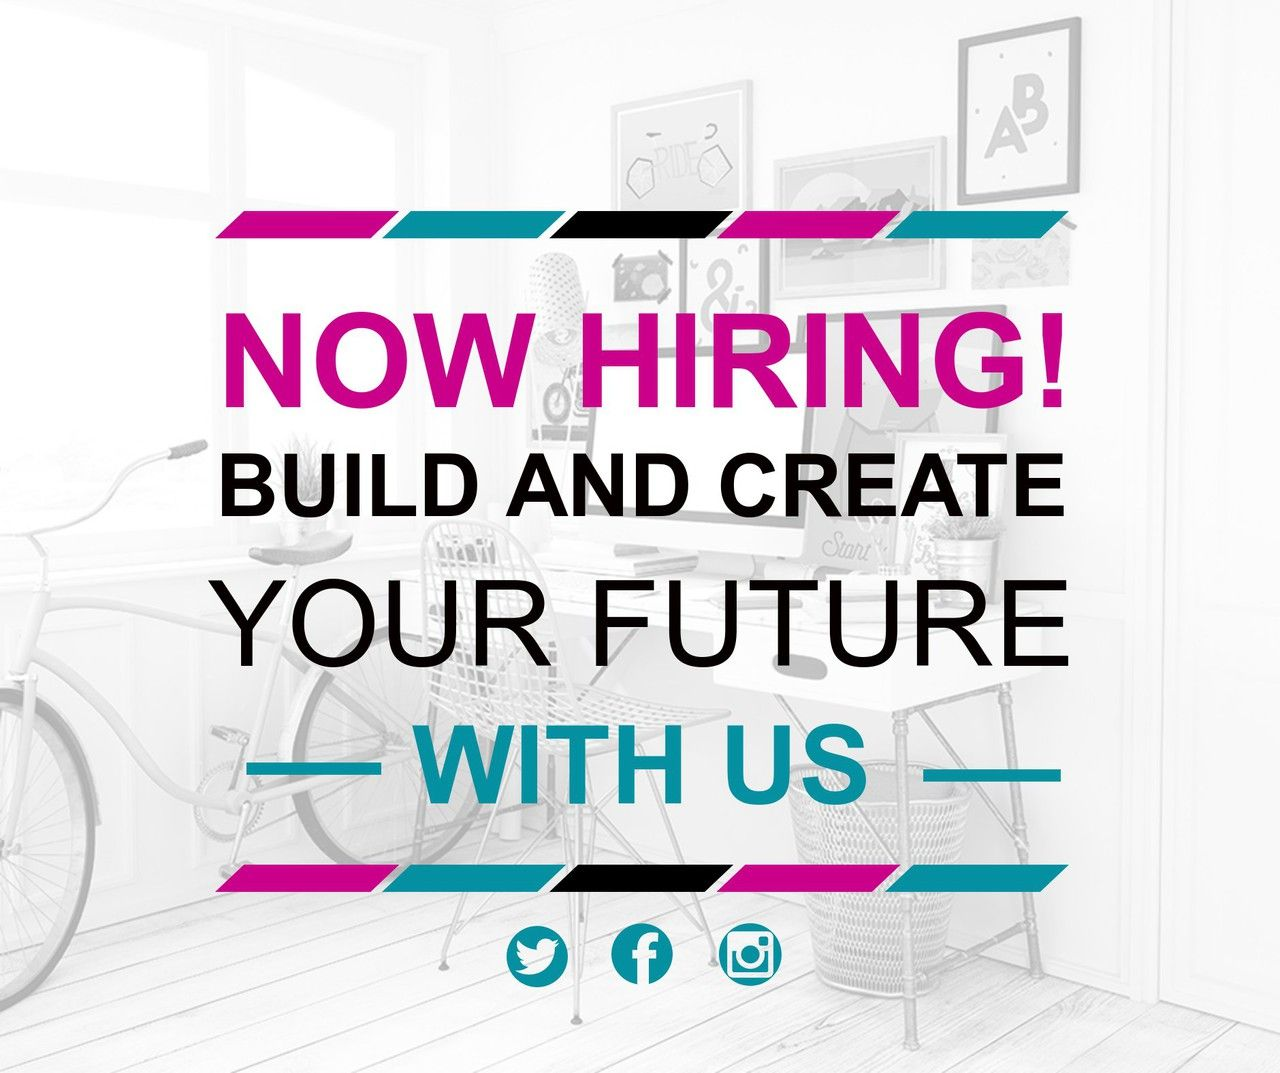 We Are Looking For People Looking To Work From The Comfort